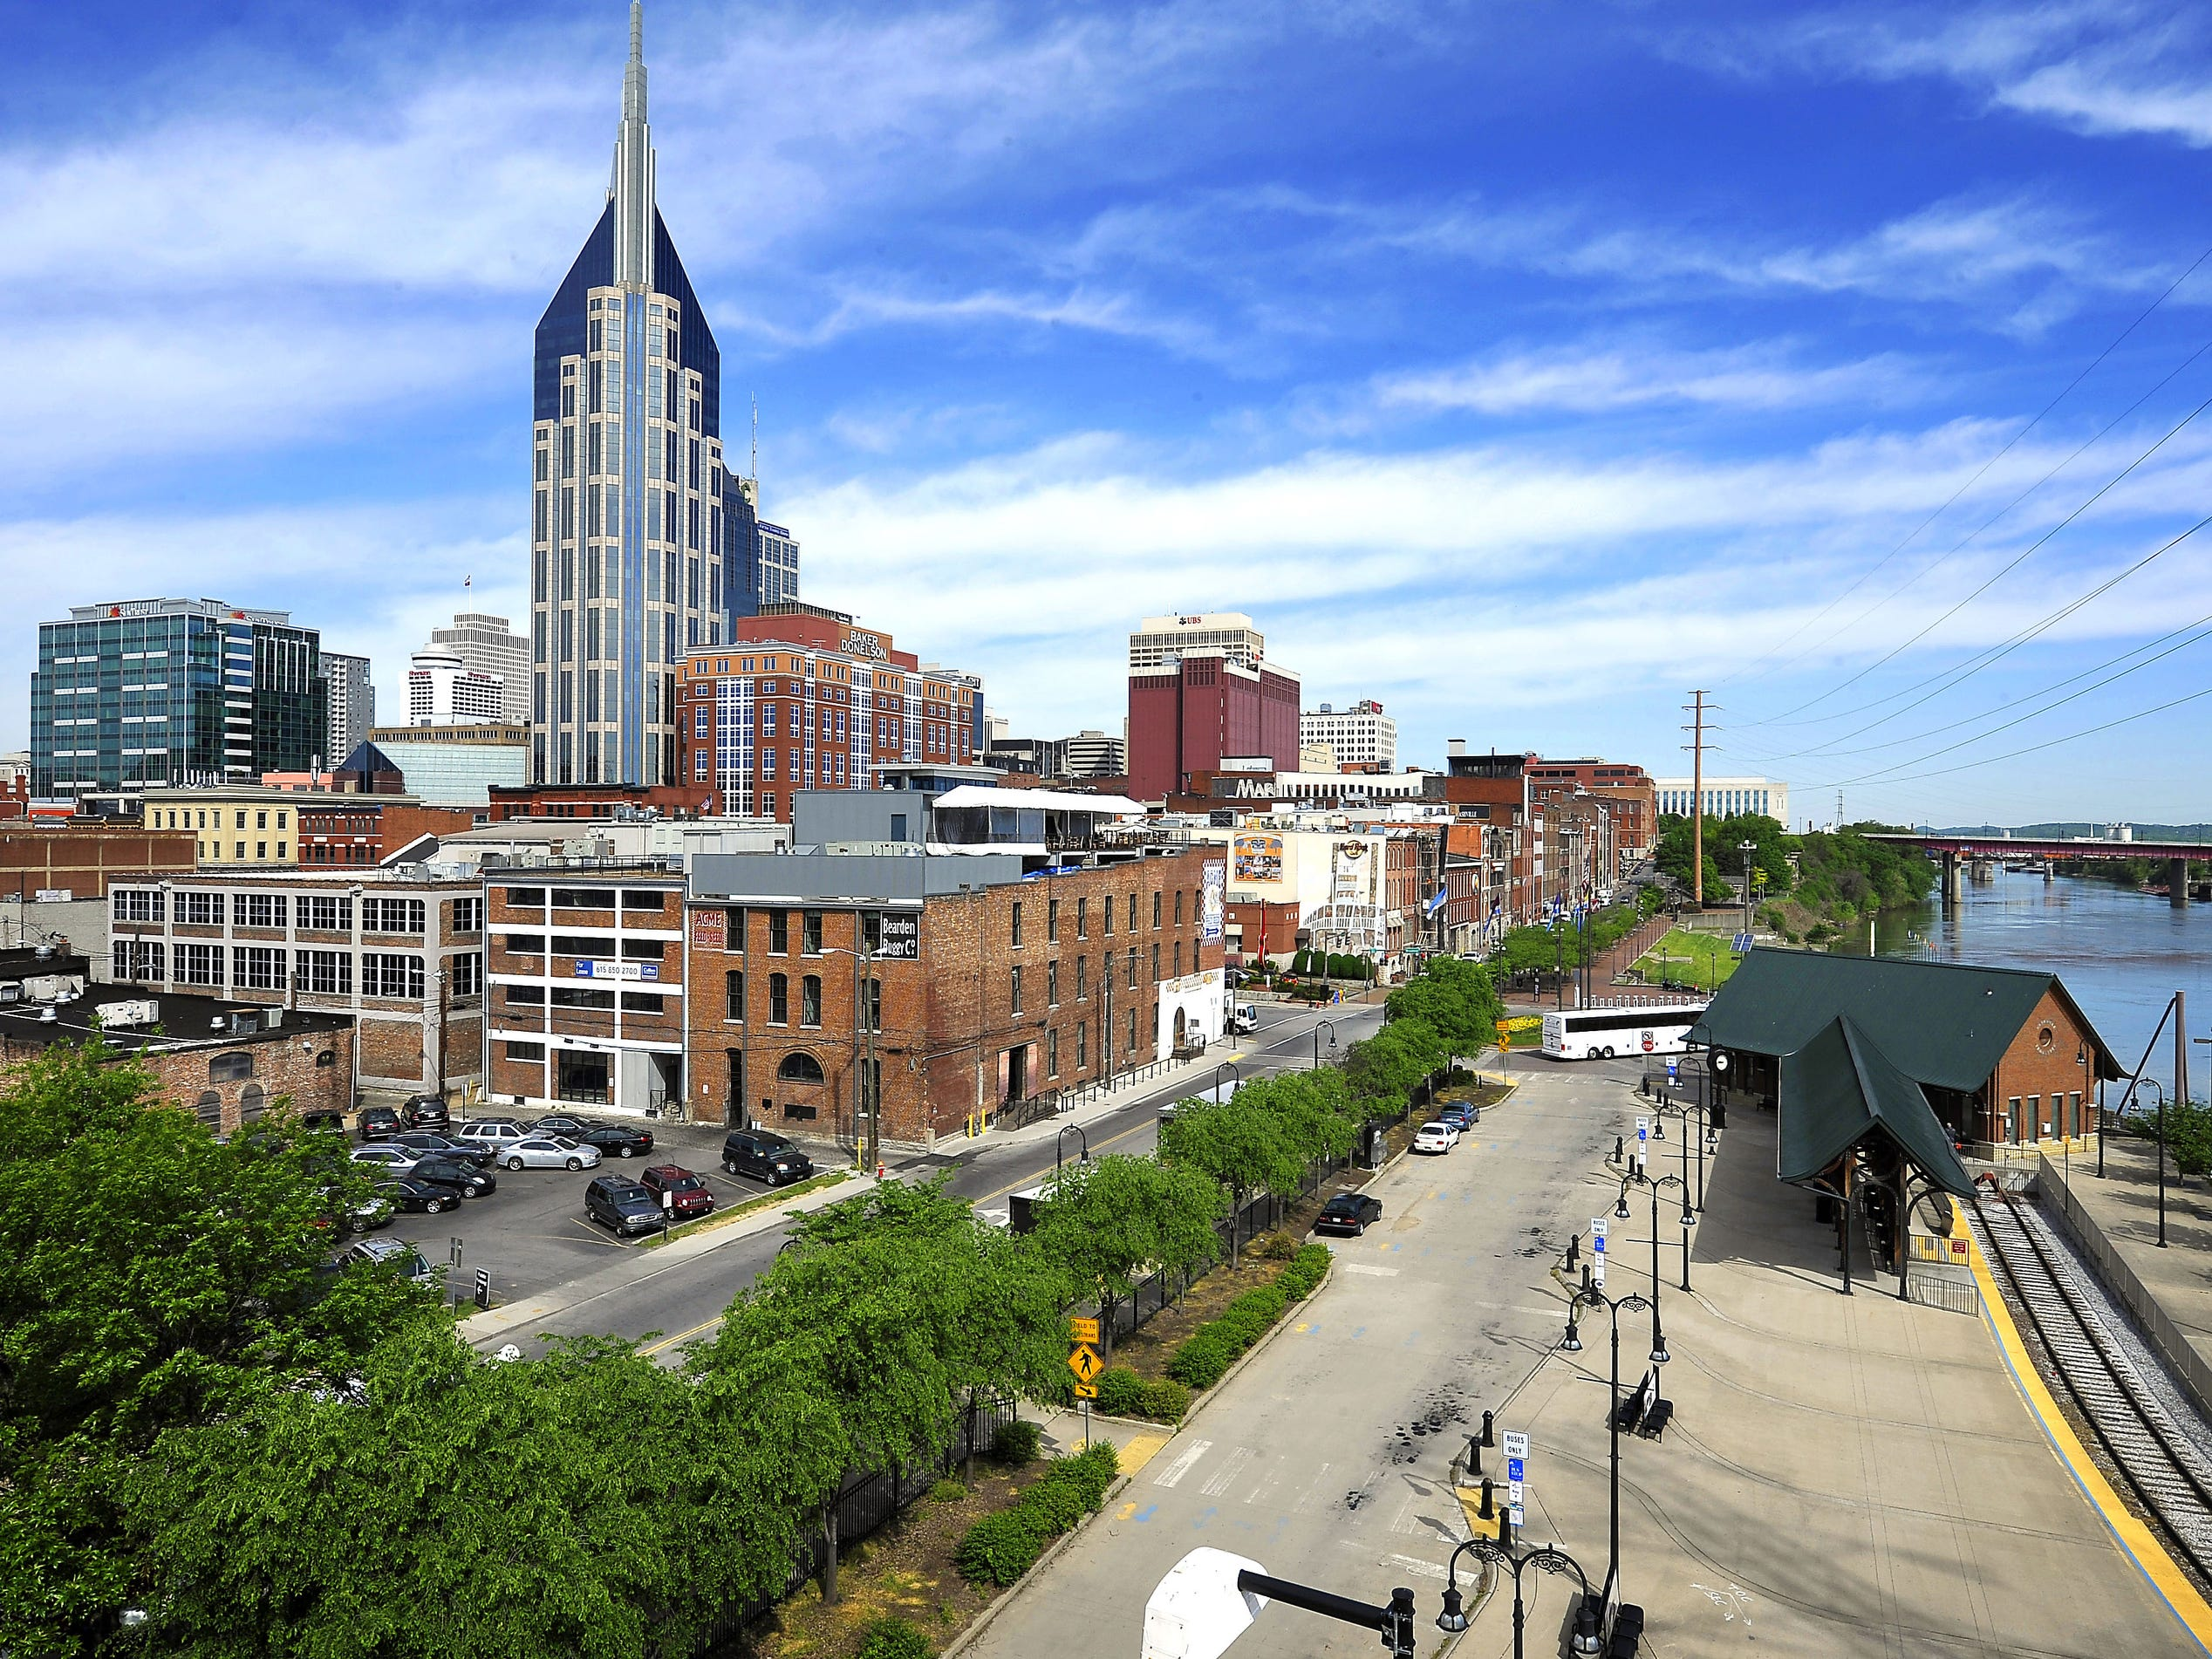 A view of the downtown Nashville on April 28, 2015 close to the Cumberland River five years after the flood in 2015.